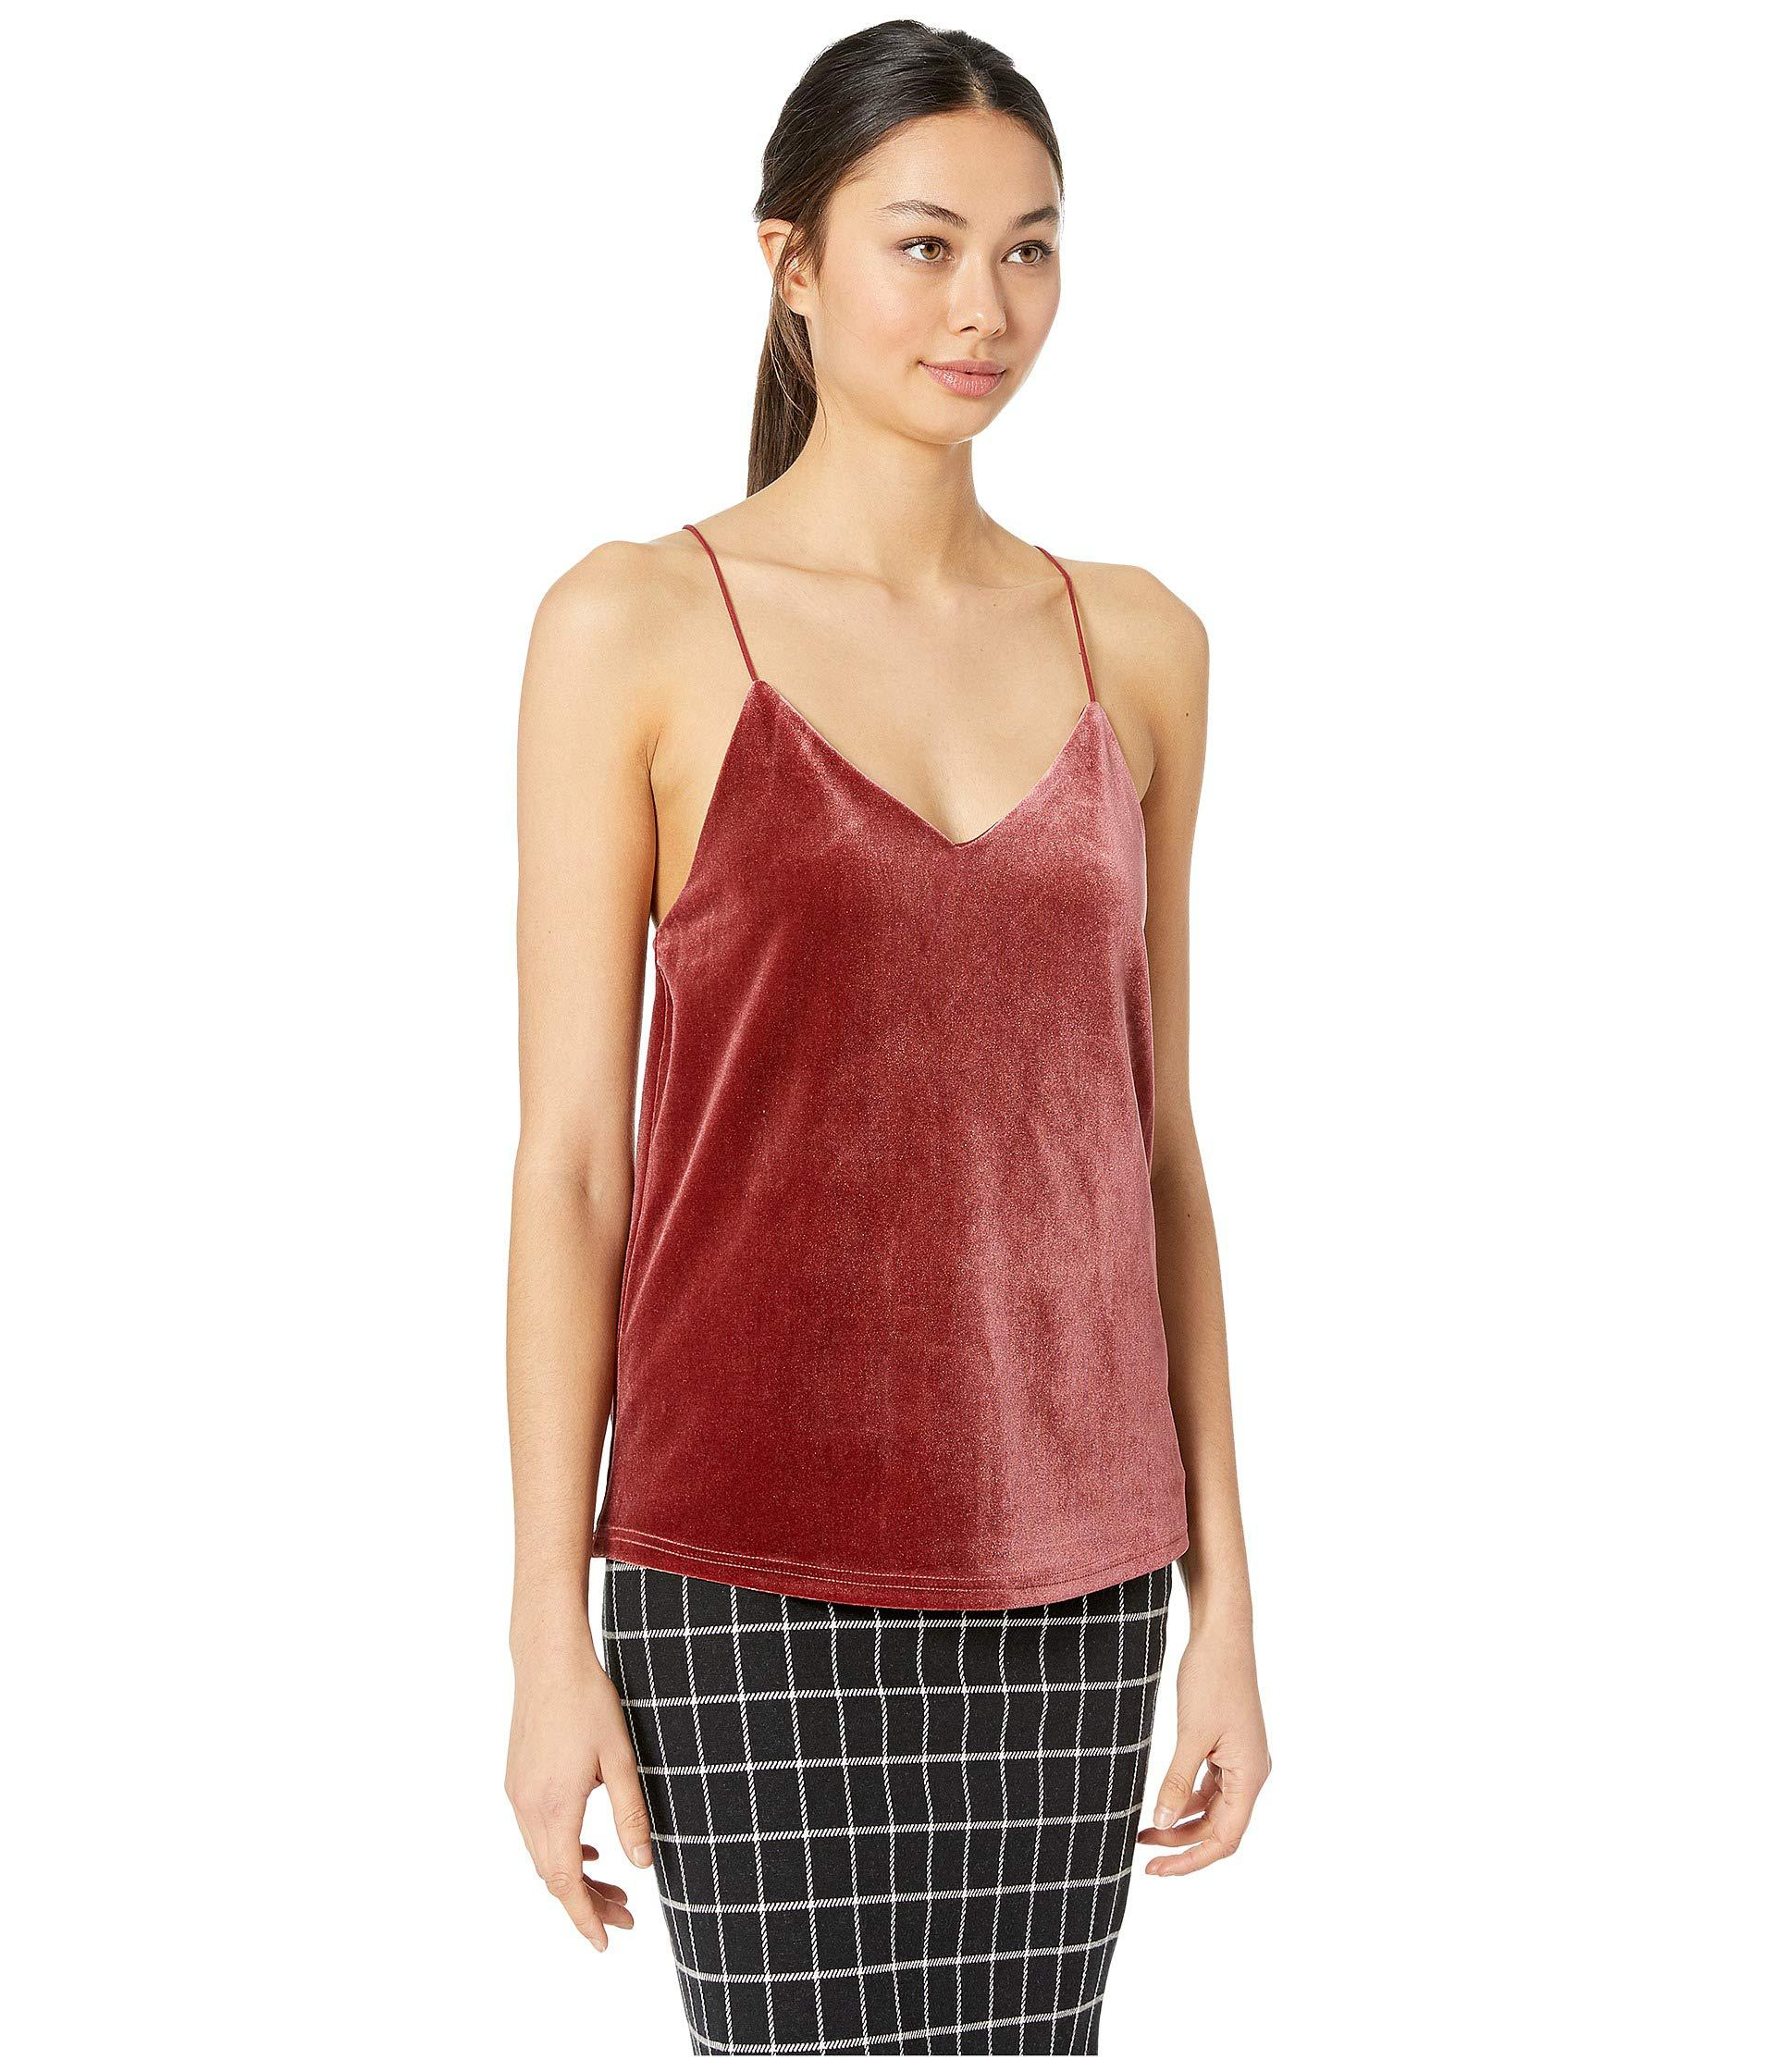 7bbe03e33d Lyst - Bishop + Young Velvet Cami (rose Gold) Women s Sleeveless in Red